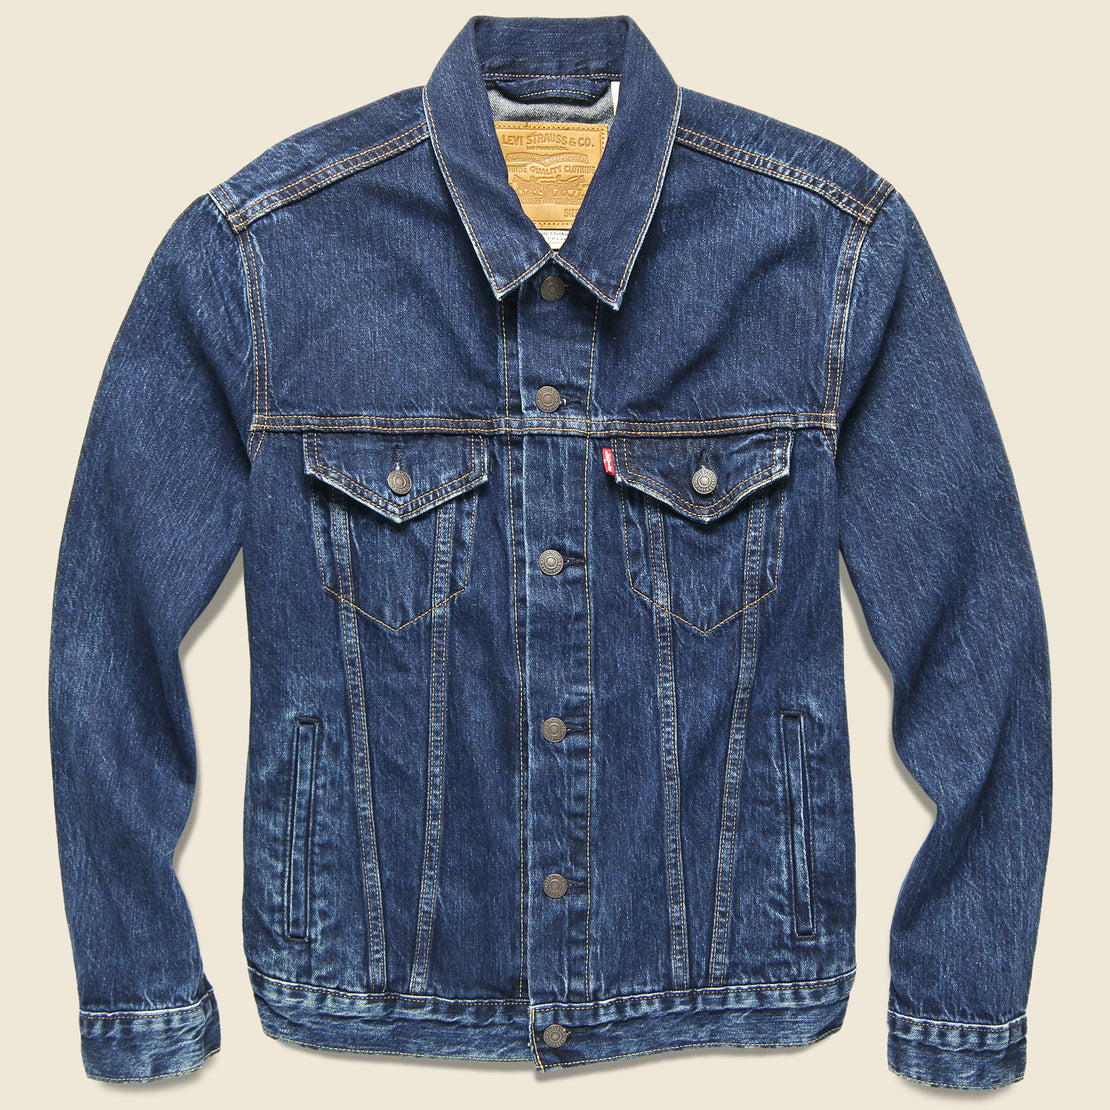 Levis Premium Trucker Jacket - Rough Rinse